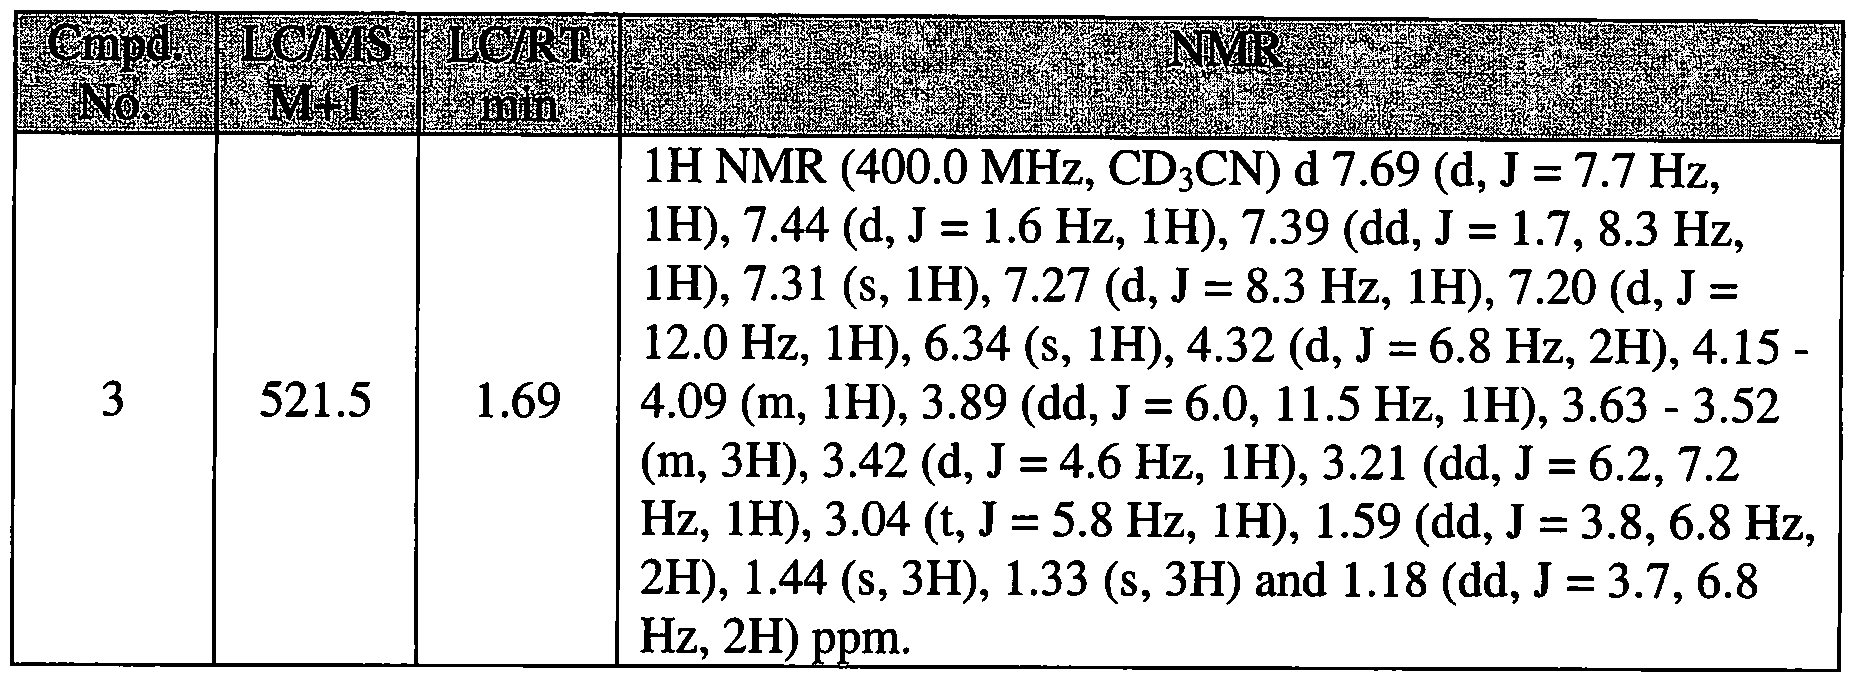 WO2011133956A1 - Pharmaceutical compositions and administrations